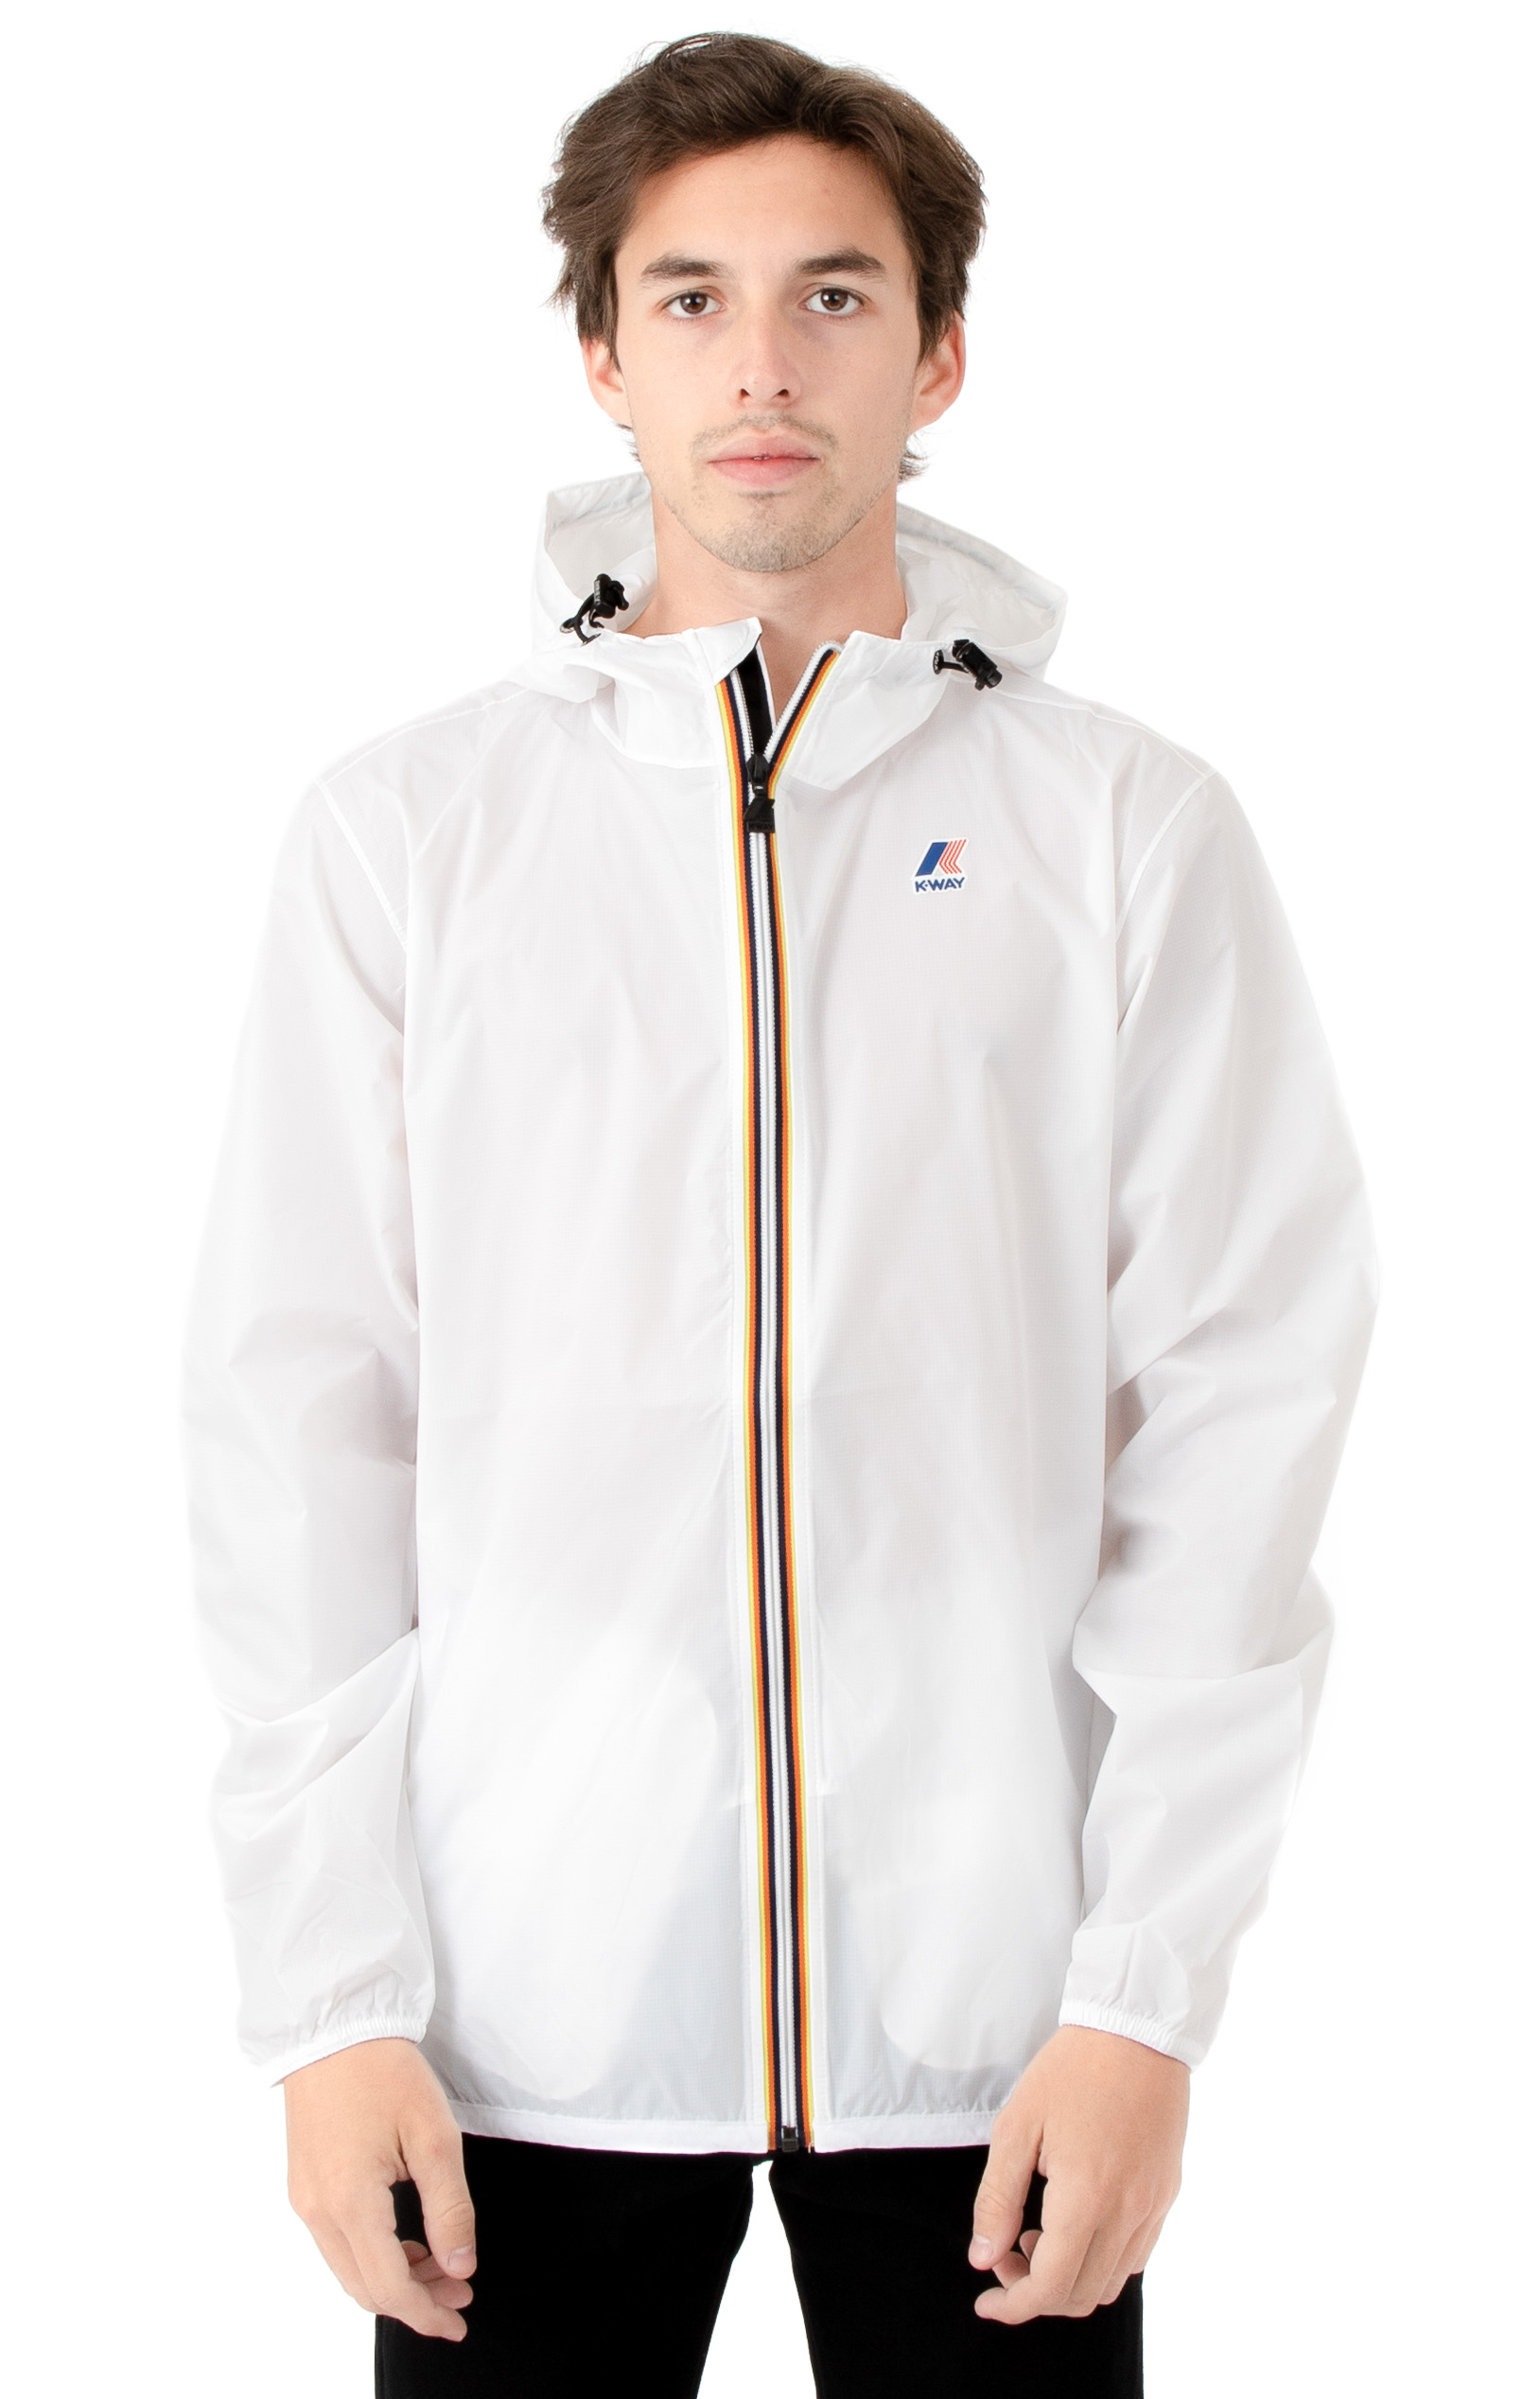 Le Vrai 3.0 Claude Jacket - White